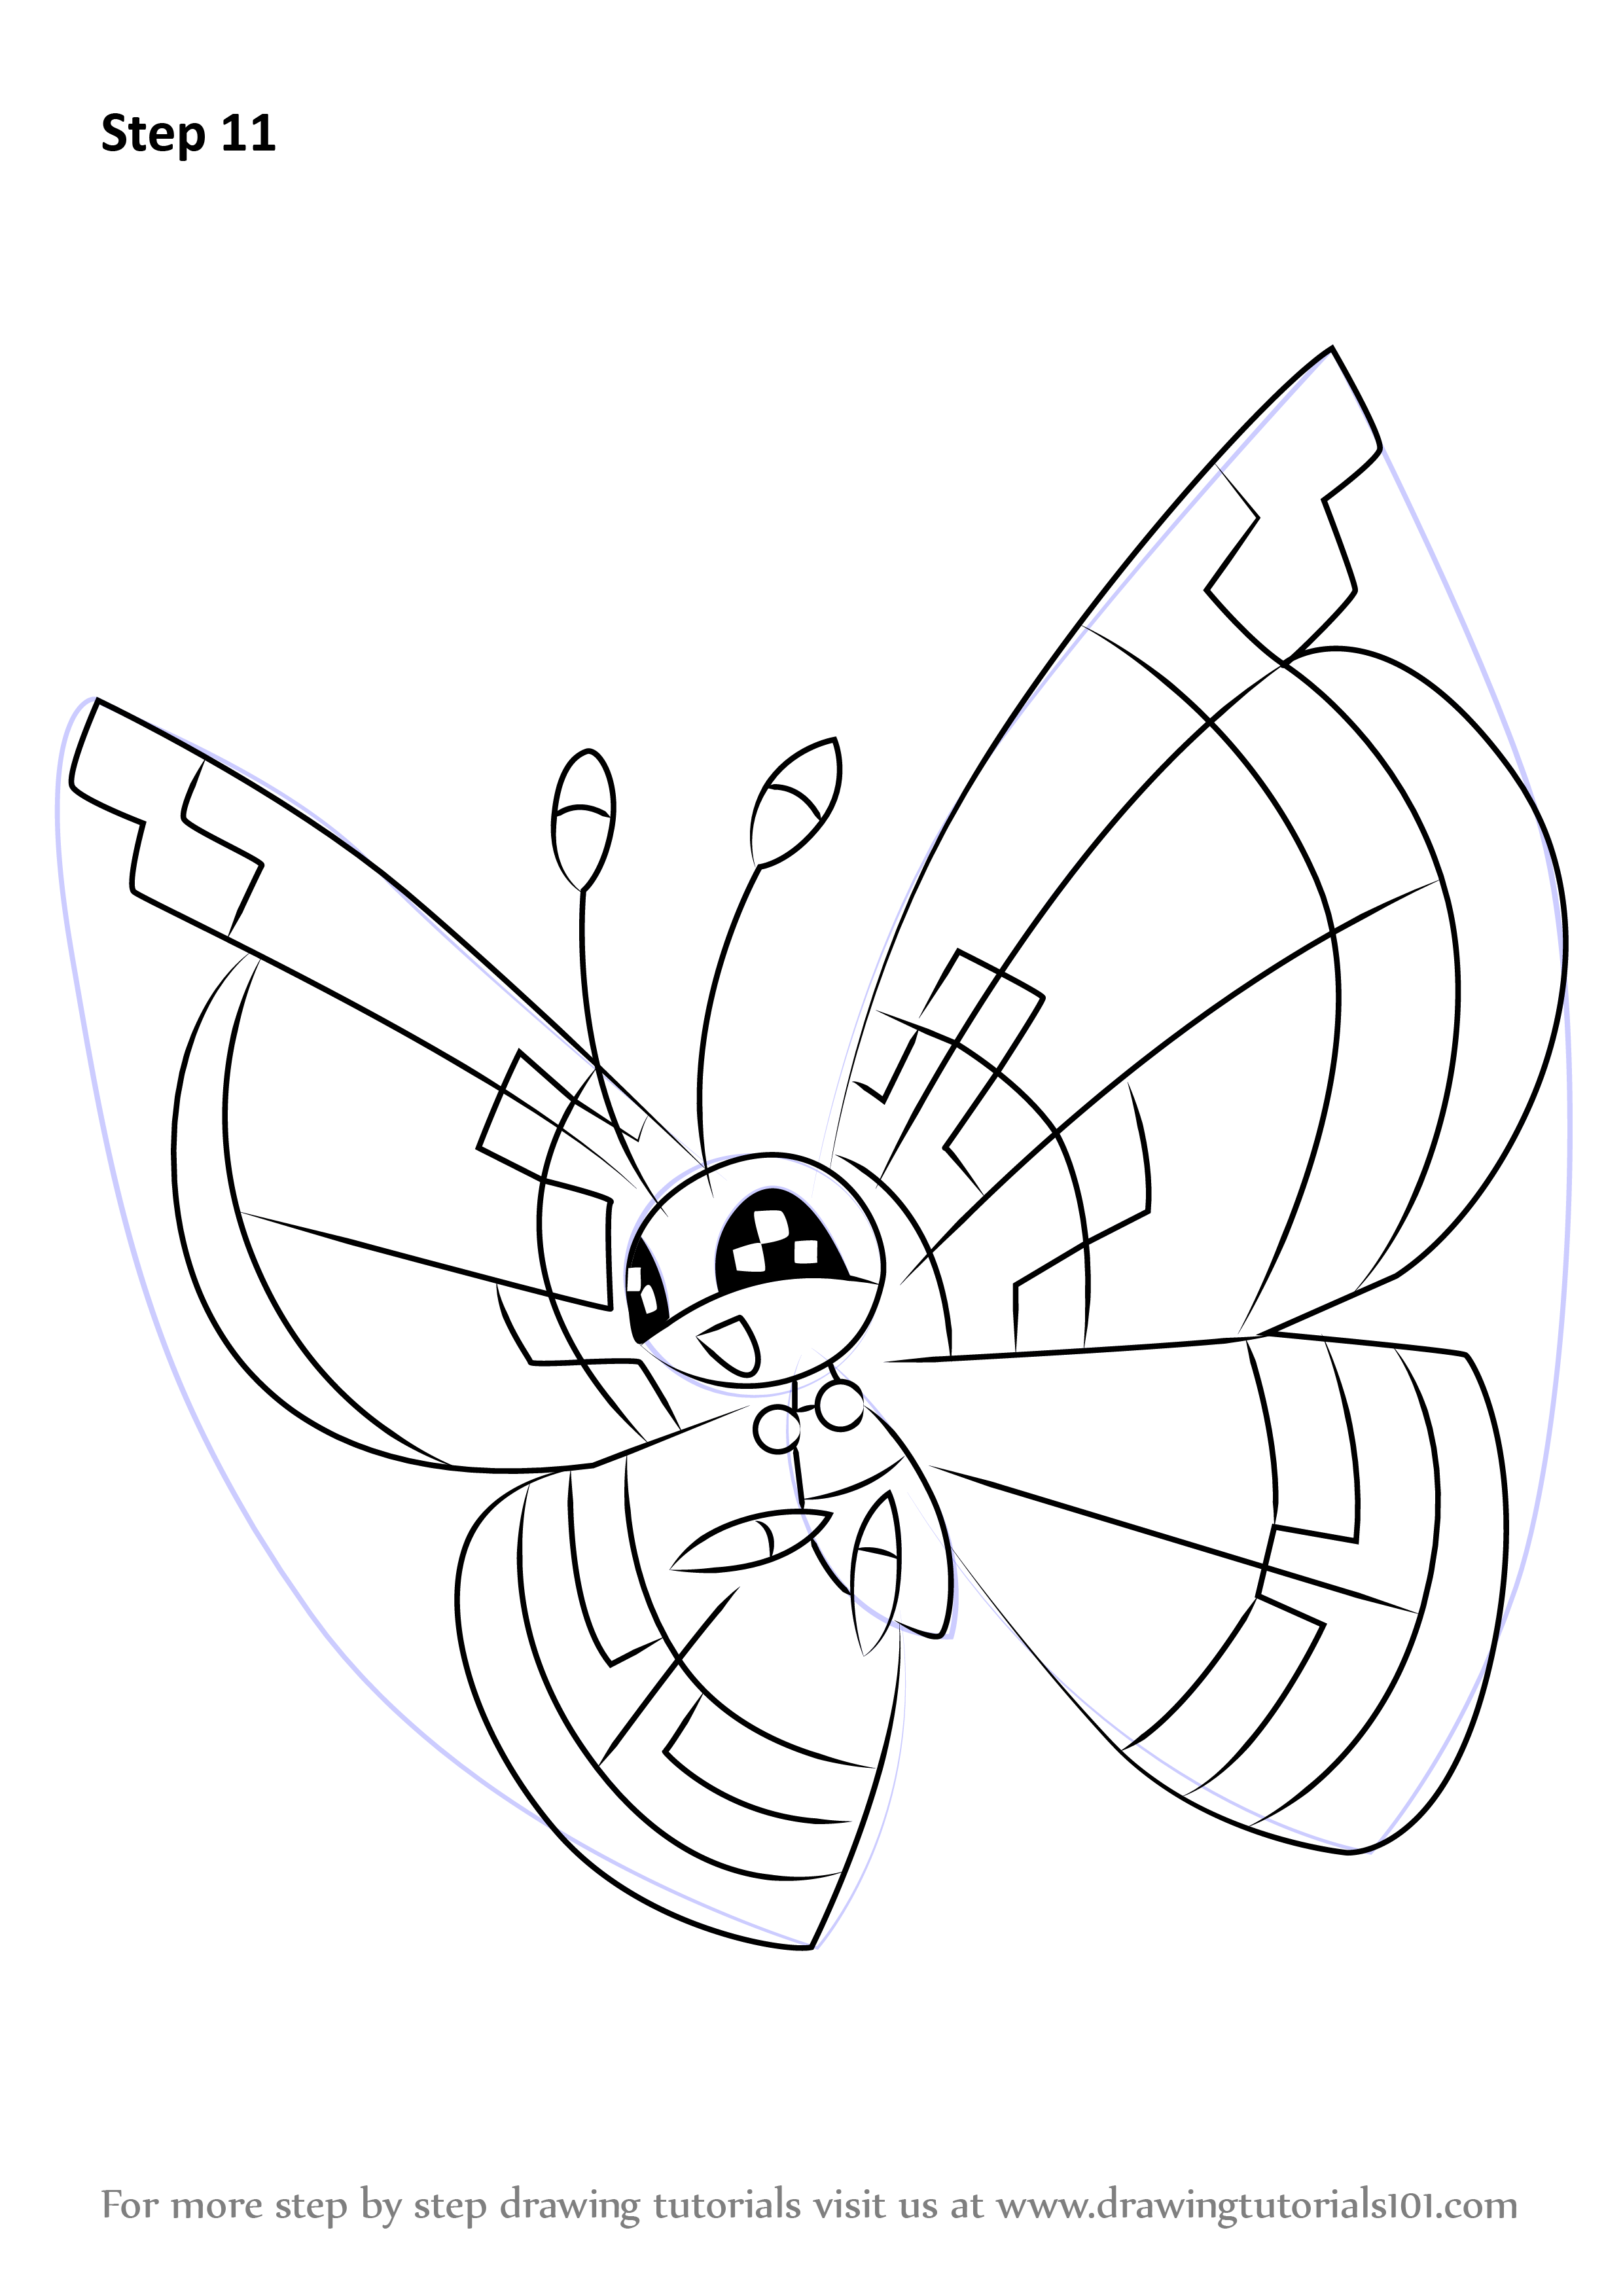 Uncategorized Pokémon Drawings vivillon is a butterfly like character from pokemon in this tutorial we will draw